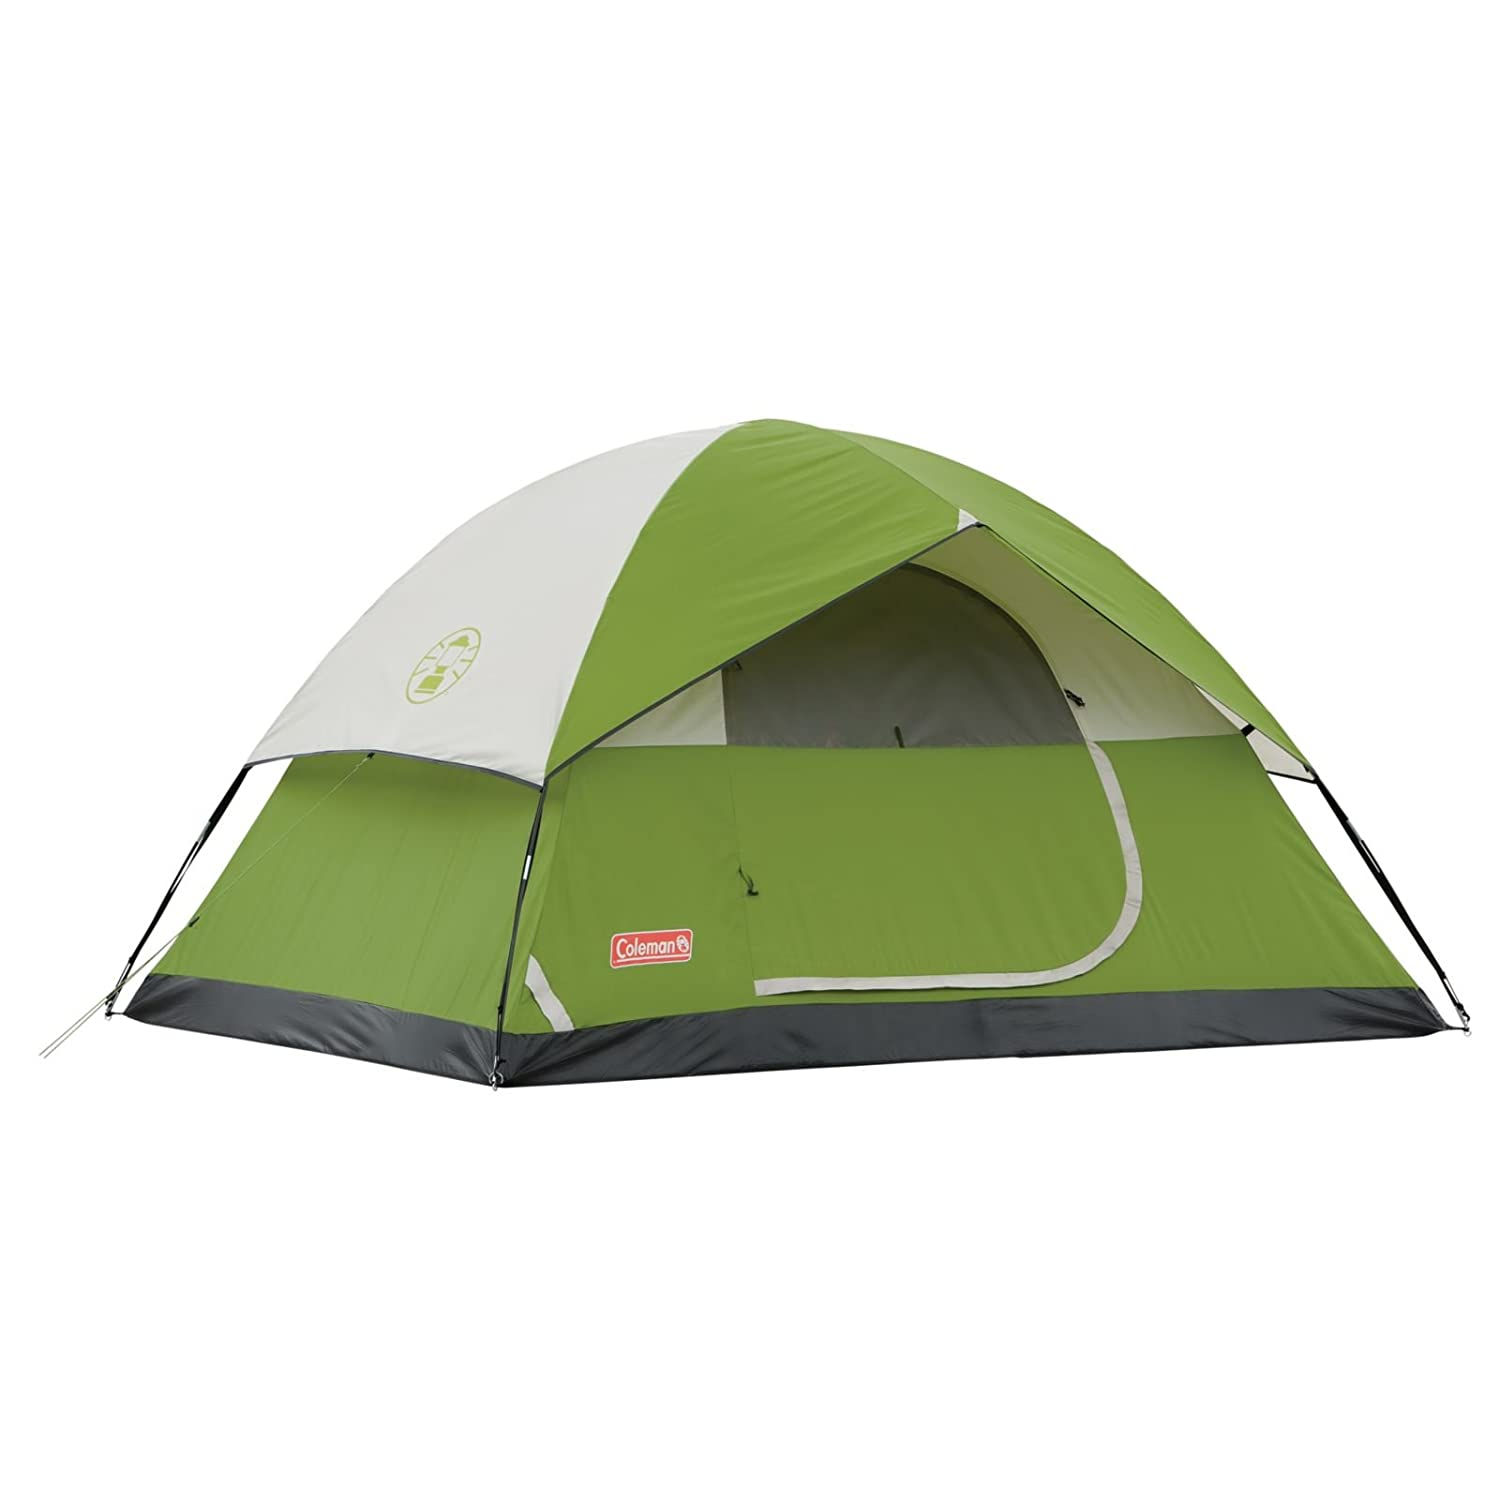 Best sellers  sc 1 st  Amazon.com & Camping Tents | Amazon.com